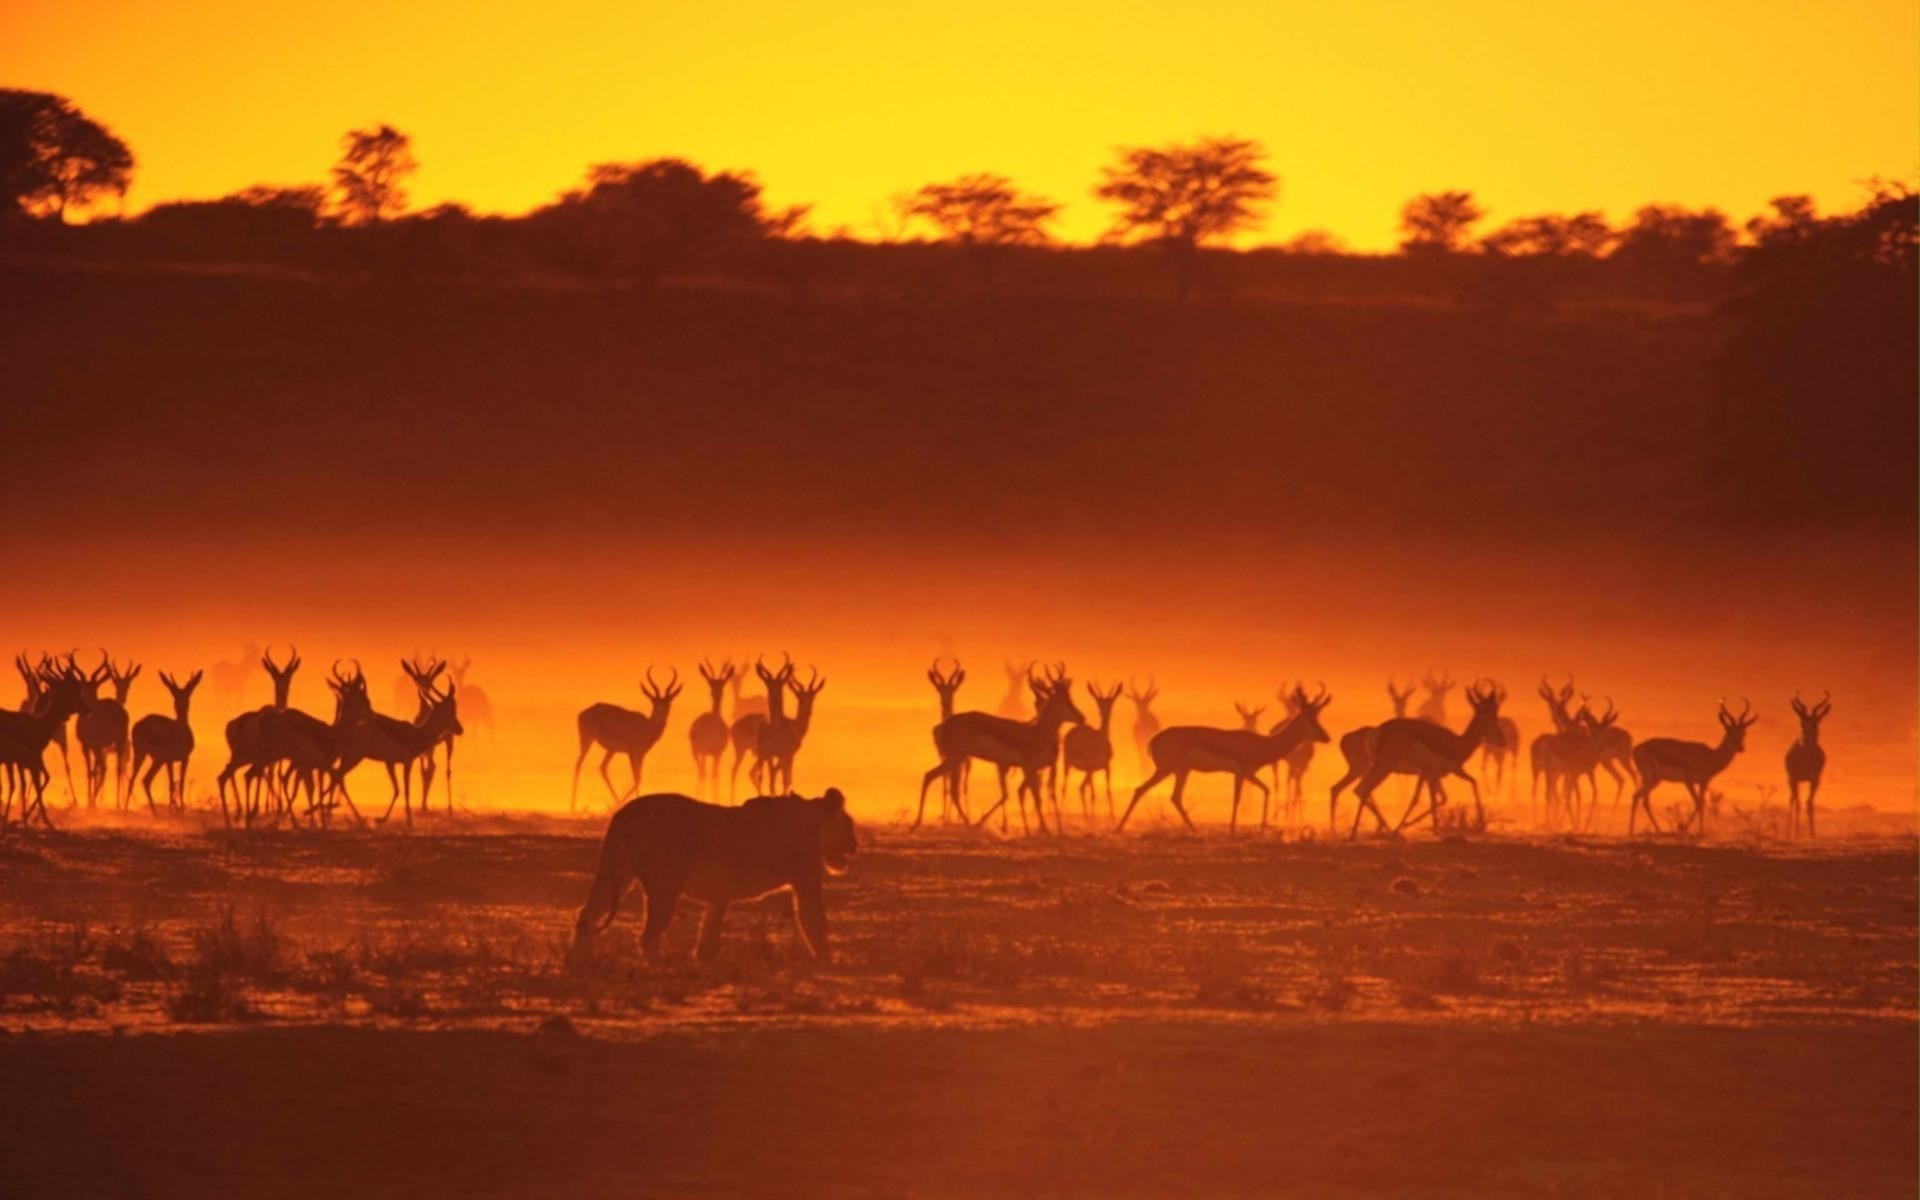 lions hunting antelopes